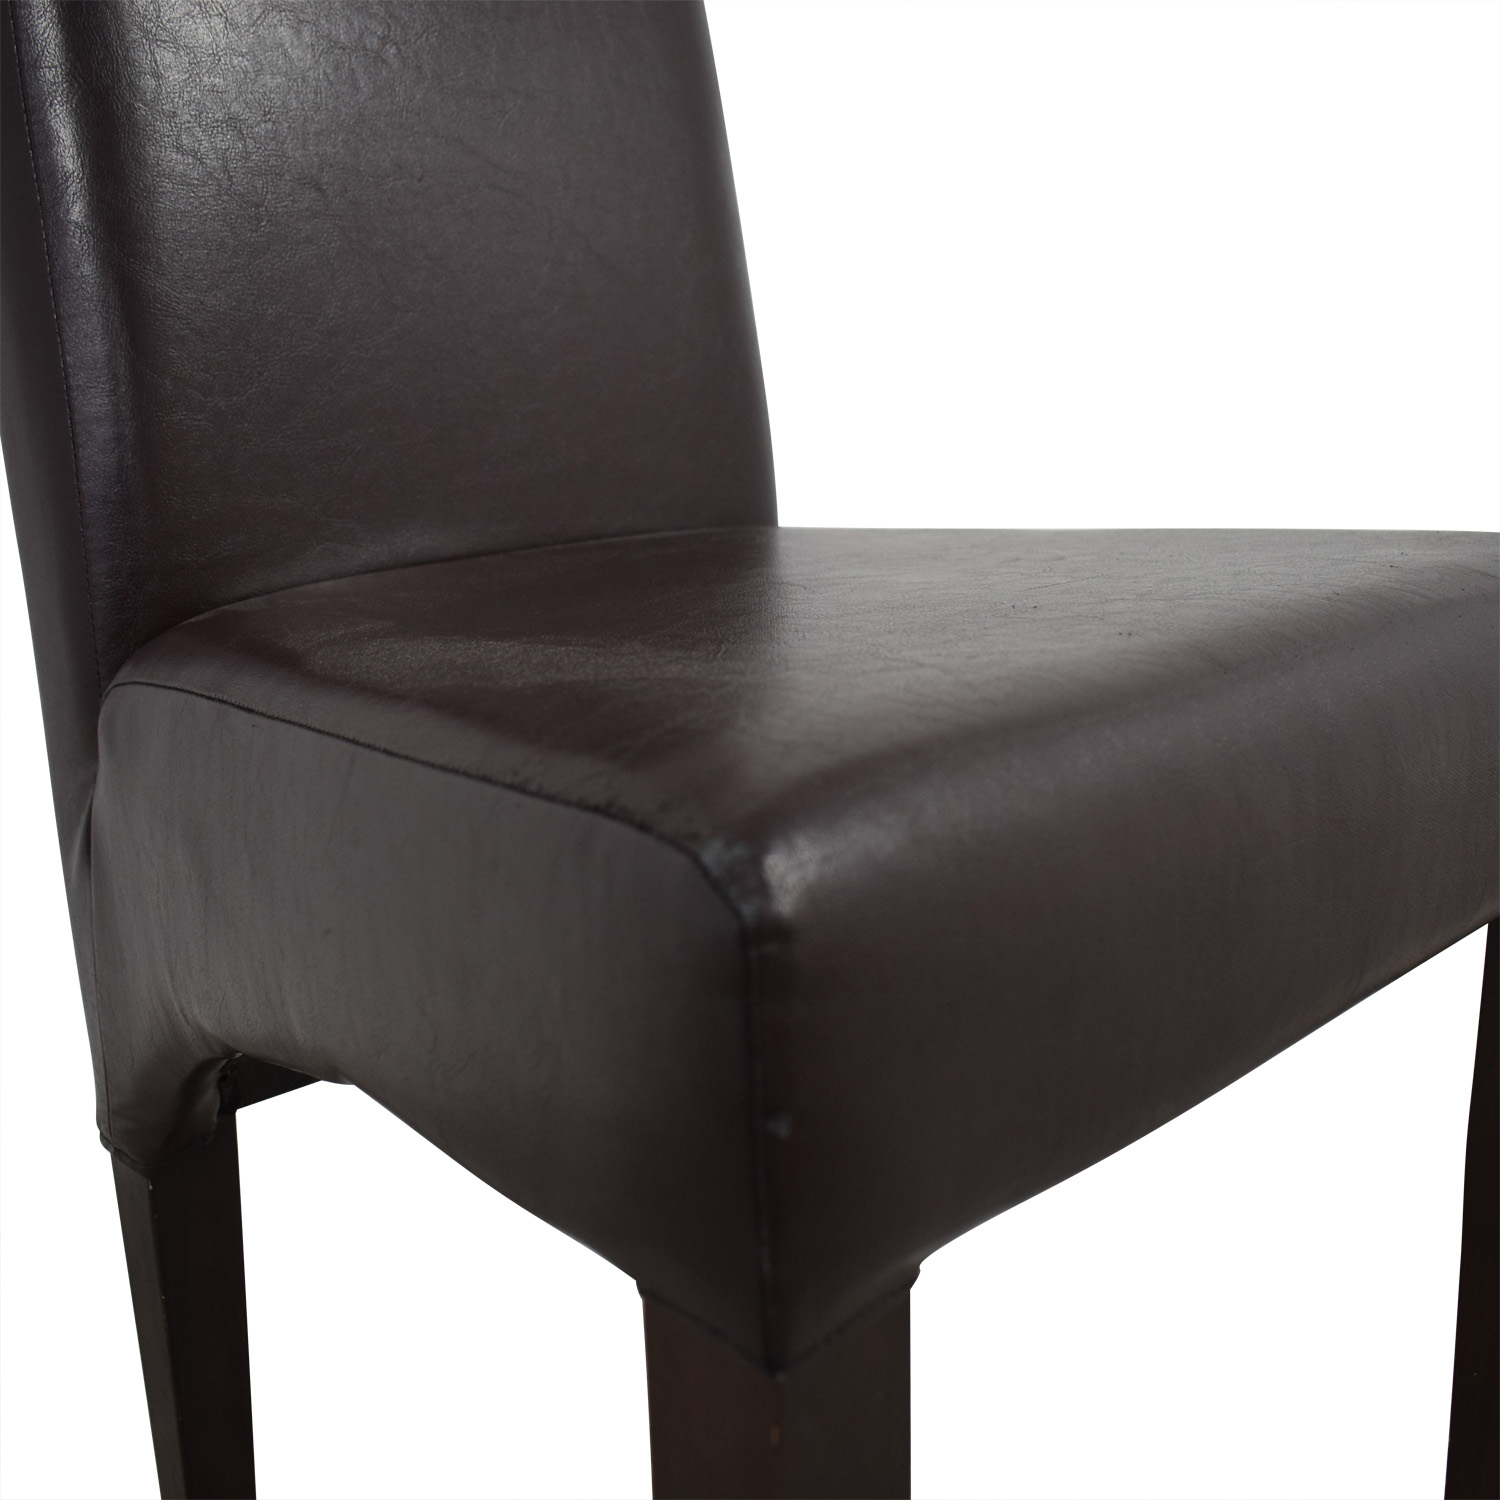 90% OFF - Pottery Barn Pottery Barn Brown Leather Dining Room Chair / Chairs